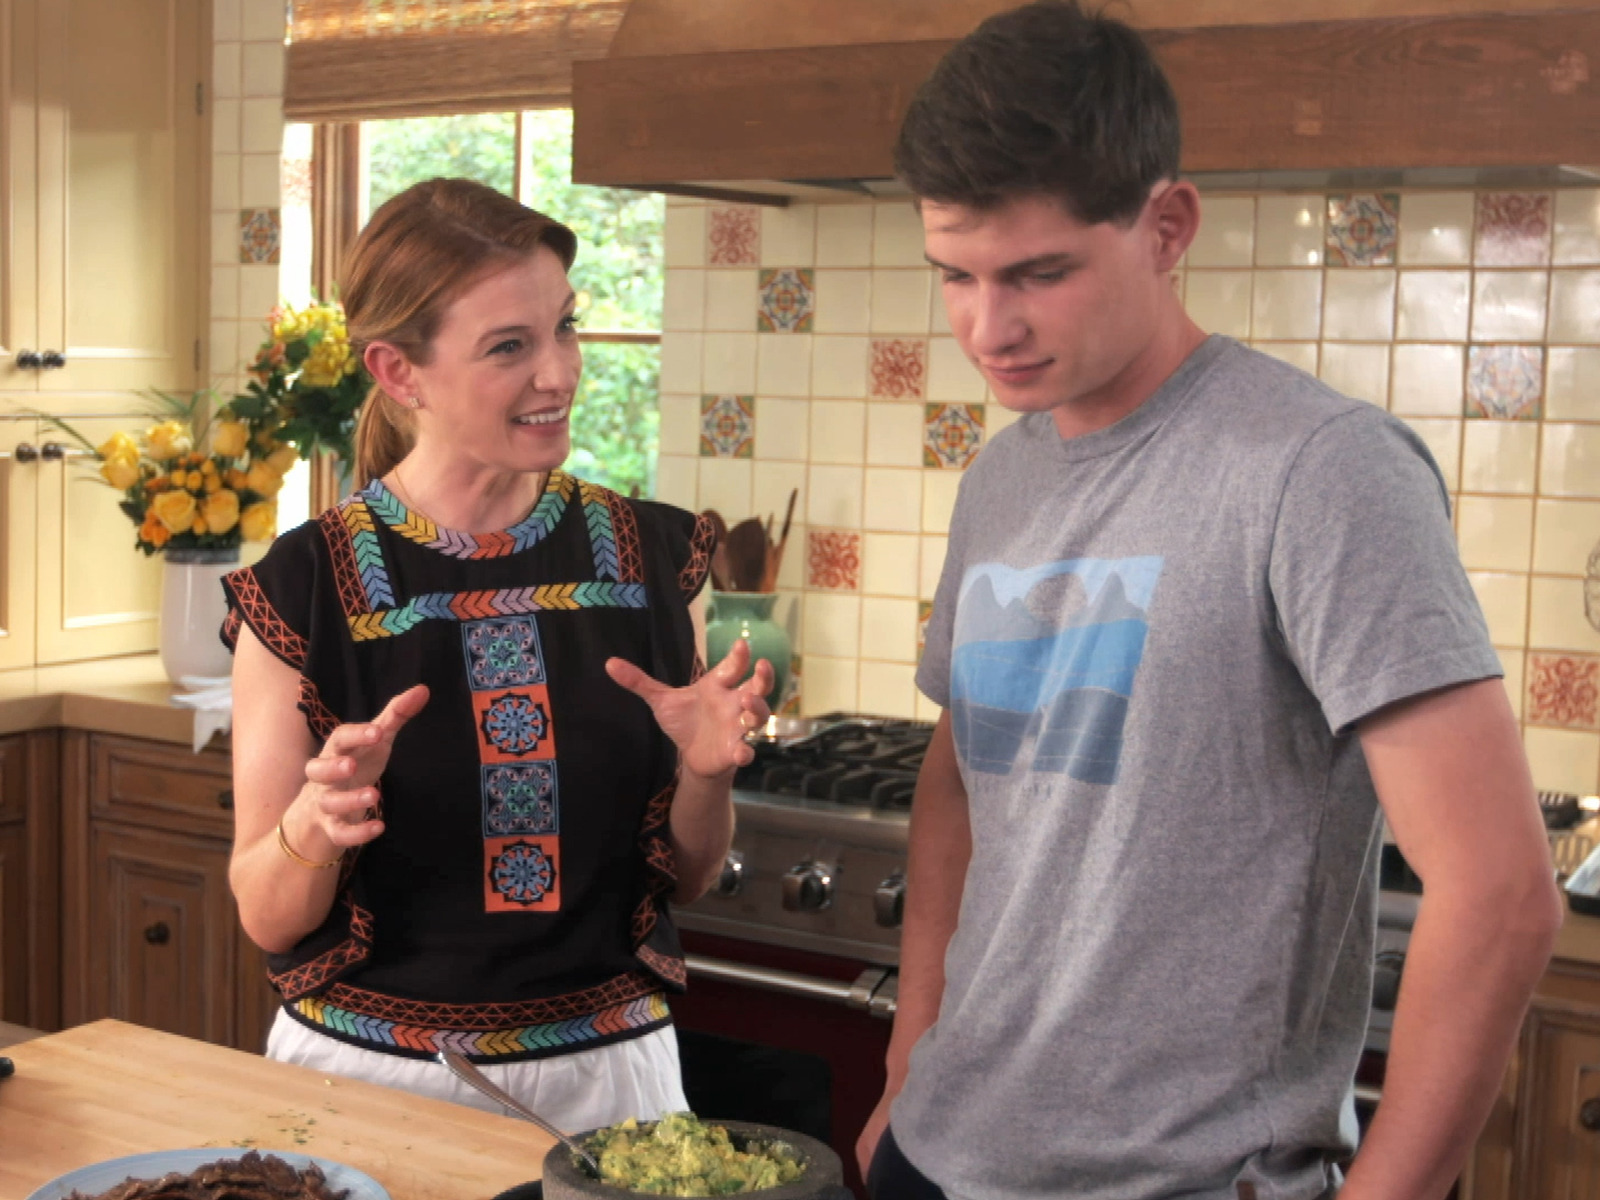 Watch Pati S Mexican Table Season 6 Episode 1 One Day In